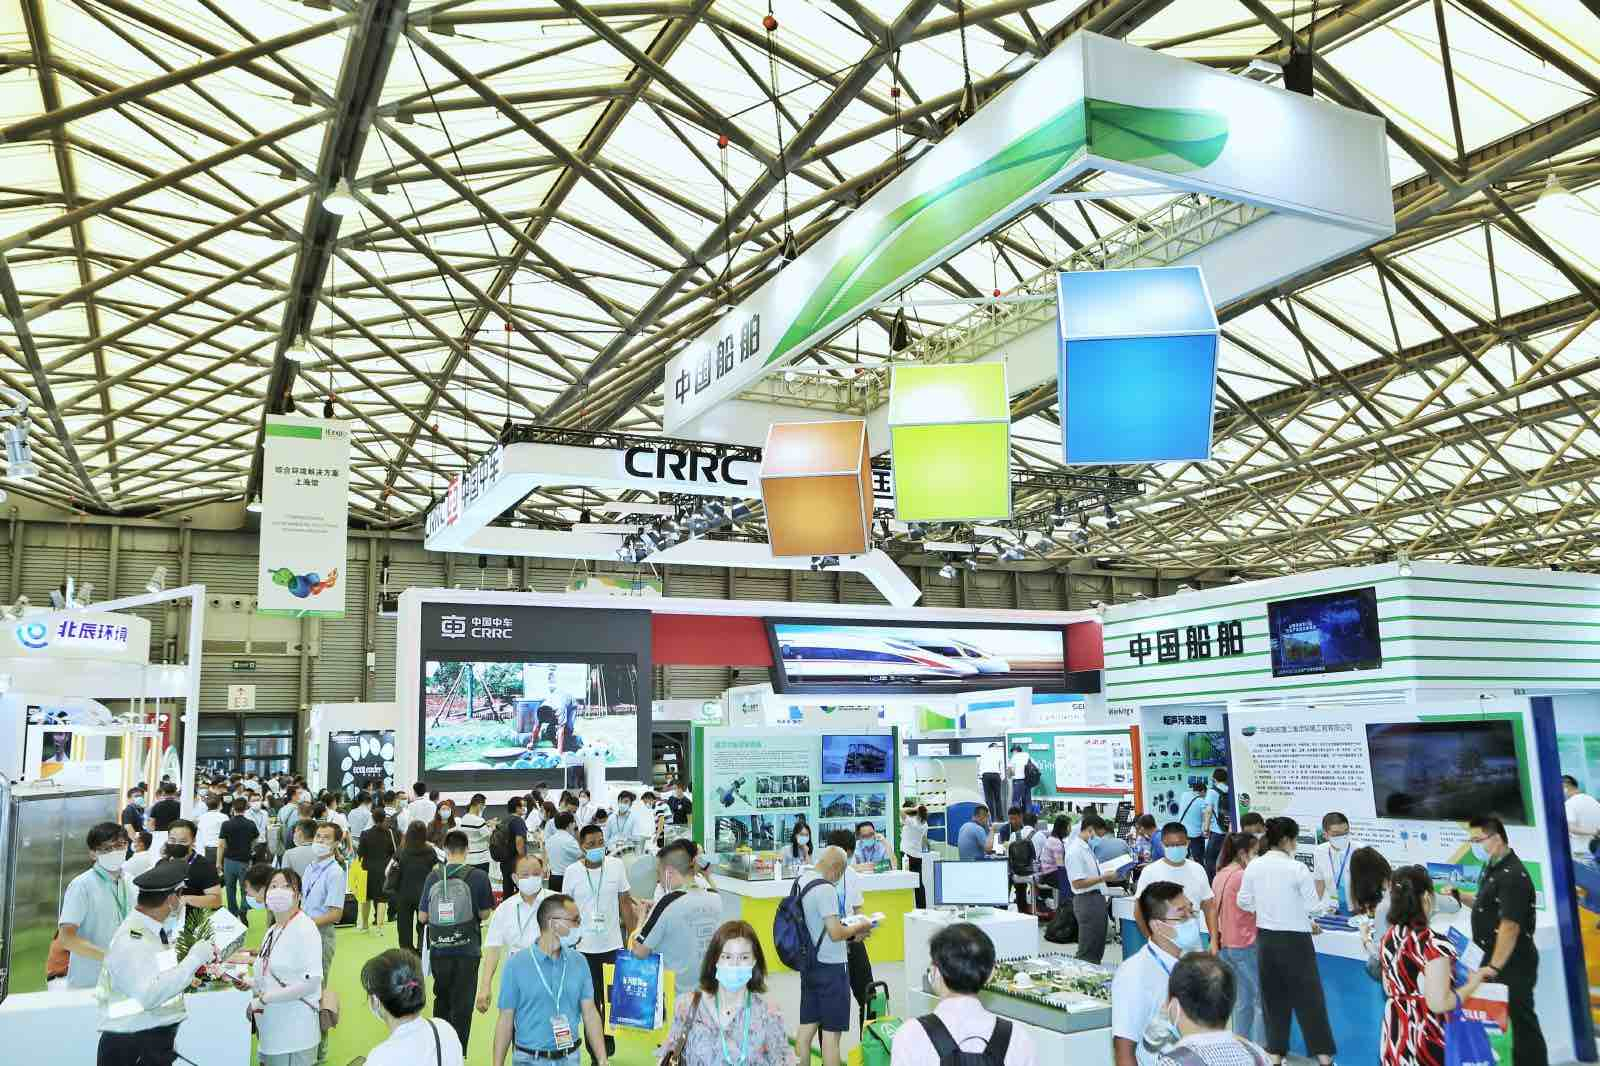 73,176 visitors traveled to IE expo China 2020